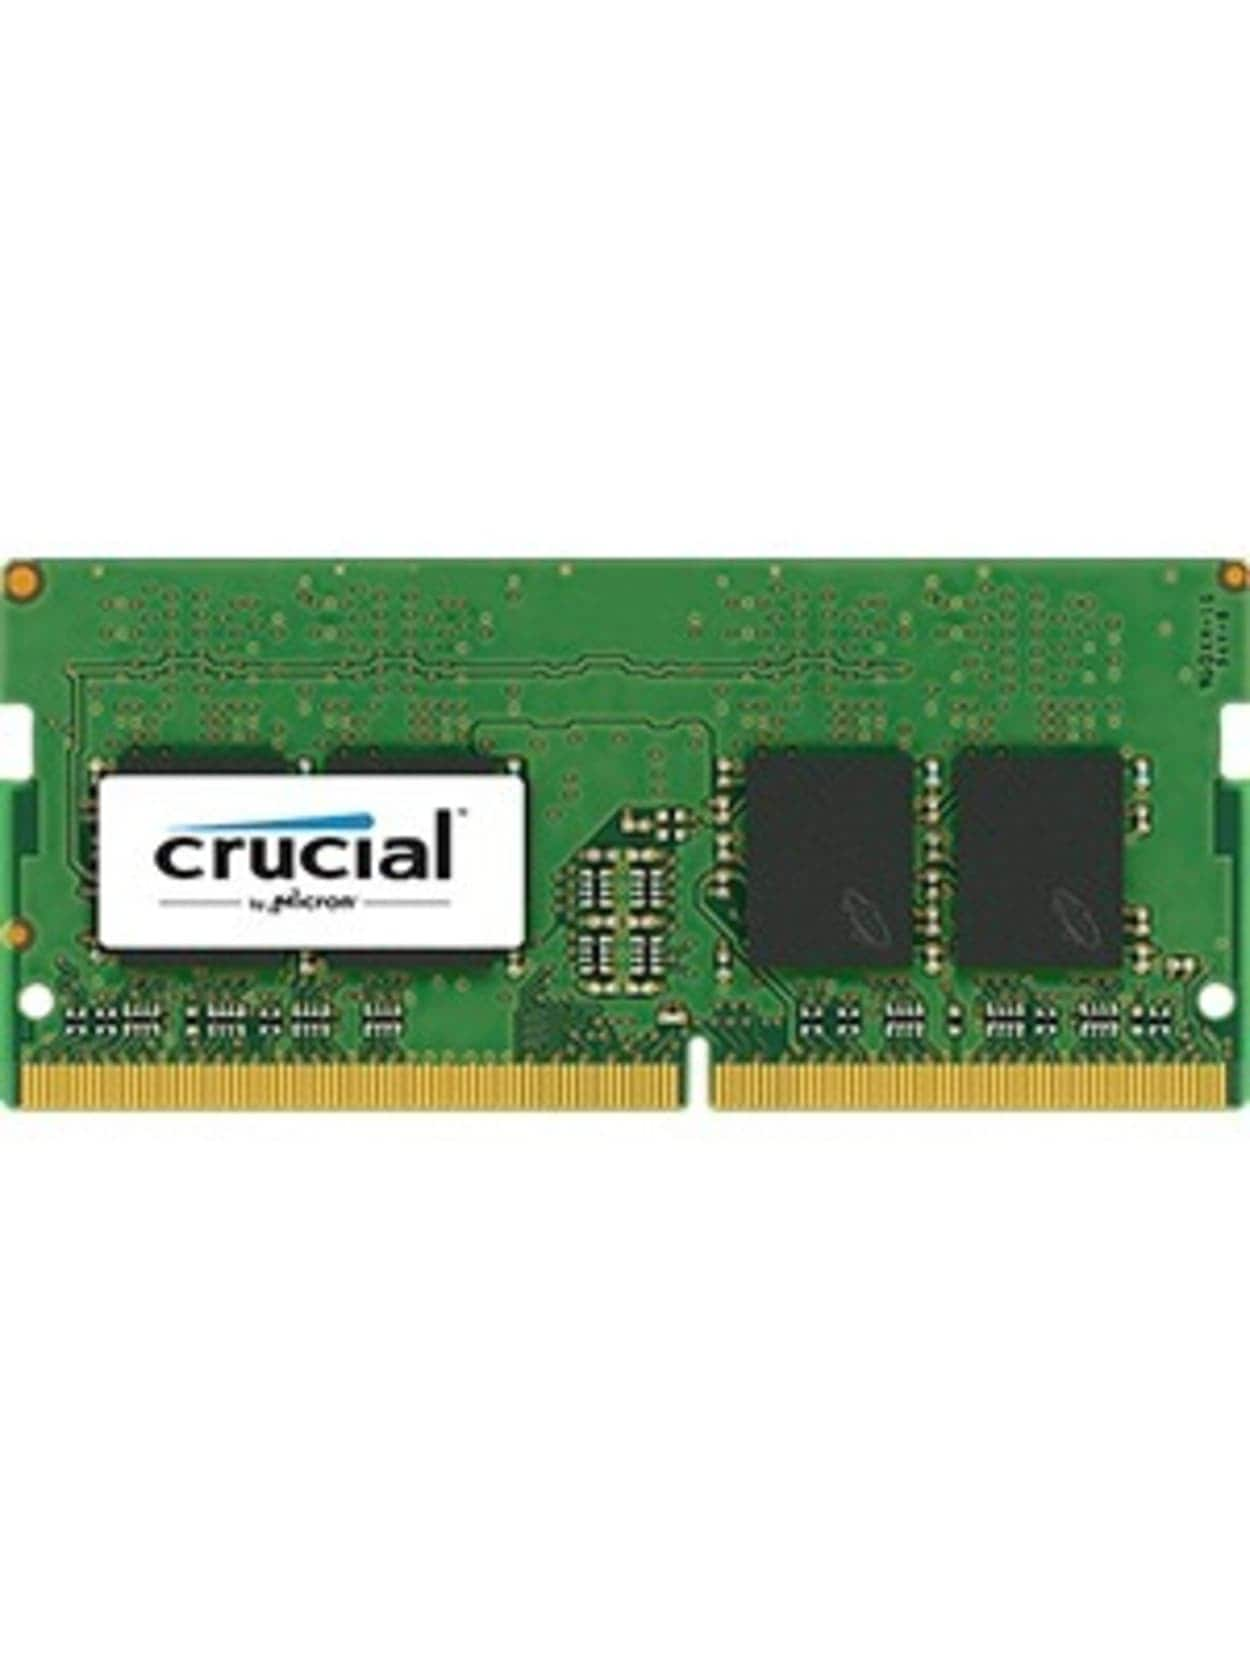 Crucial 16GB DDR4-2400 RAM SO-DIMM Laptop Memory Module $67 at Office Depot OfficeMax